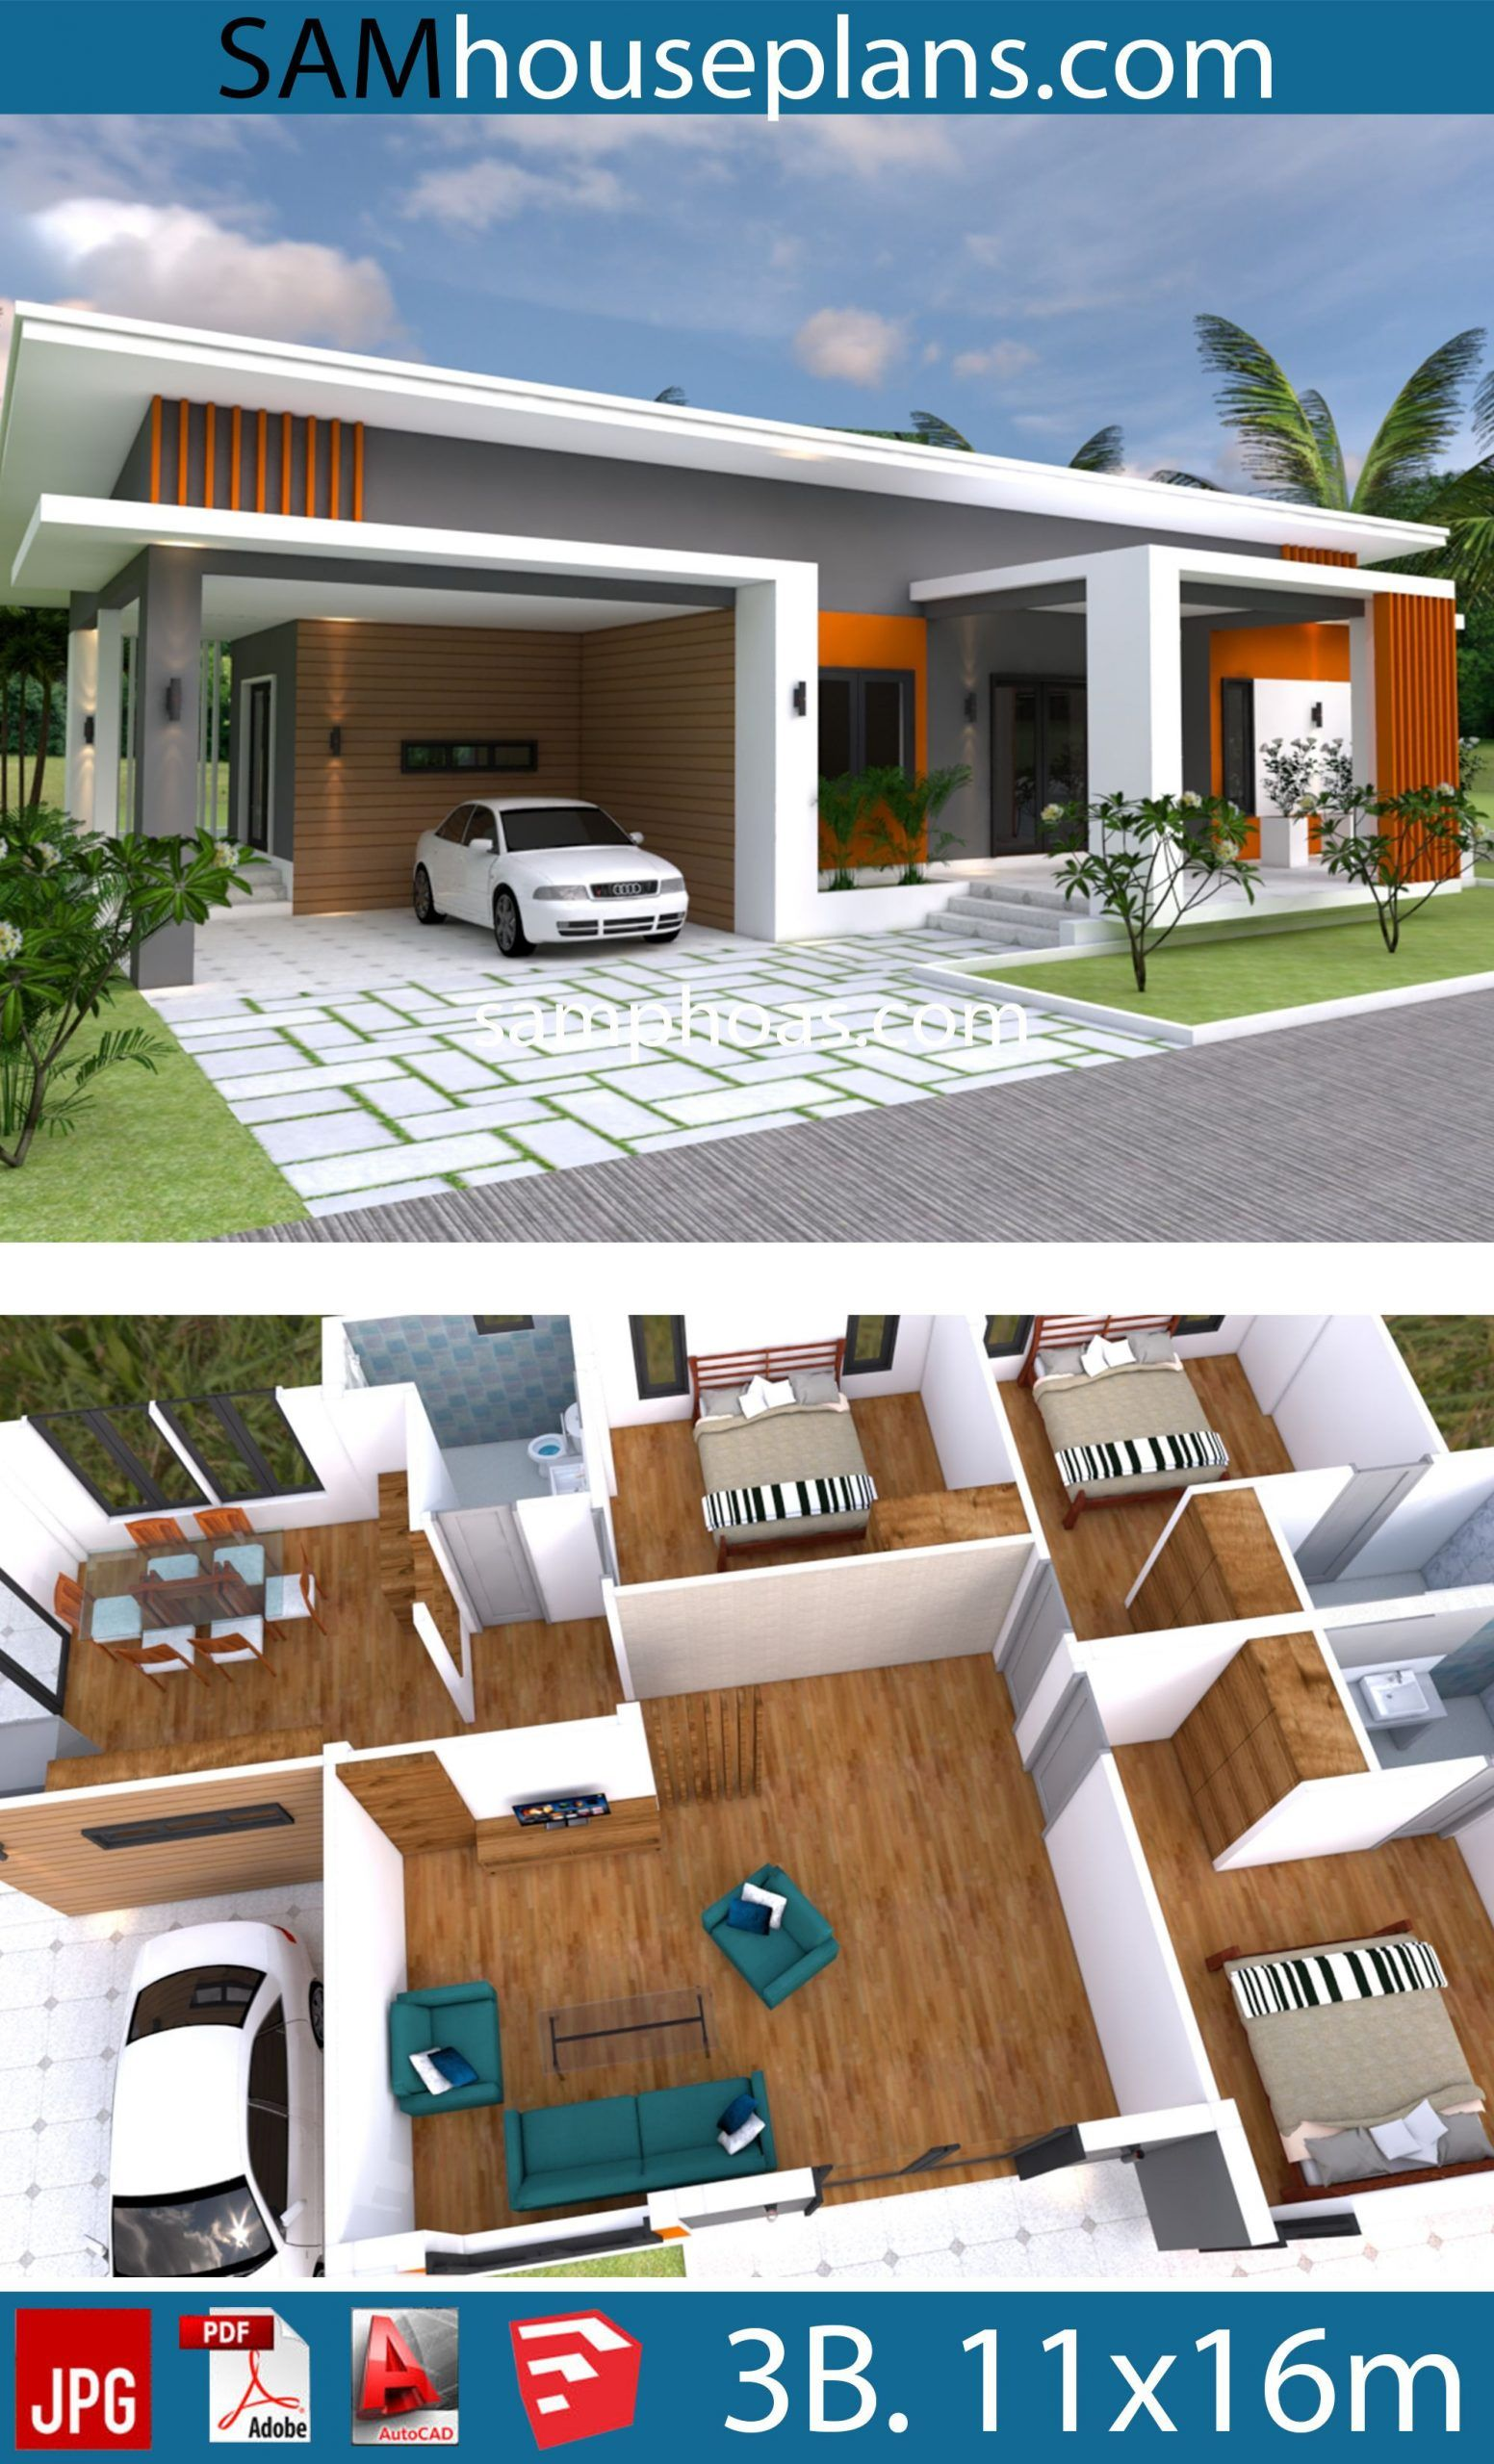 Home Plans Free Downloads 2020 Small House Design Plans House Plans Beautiful House Plans